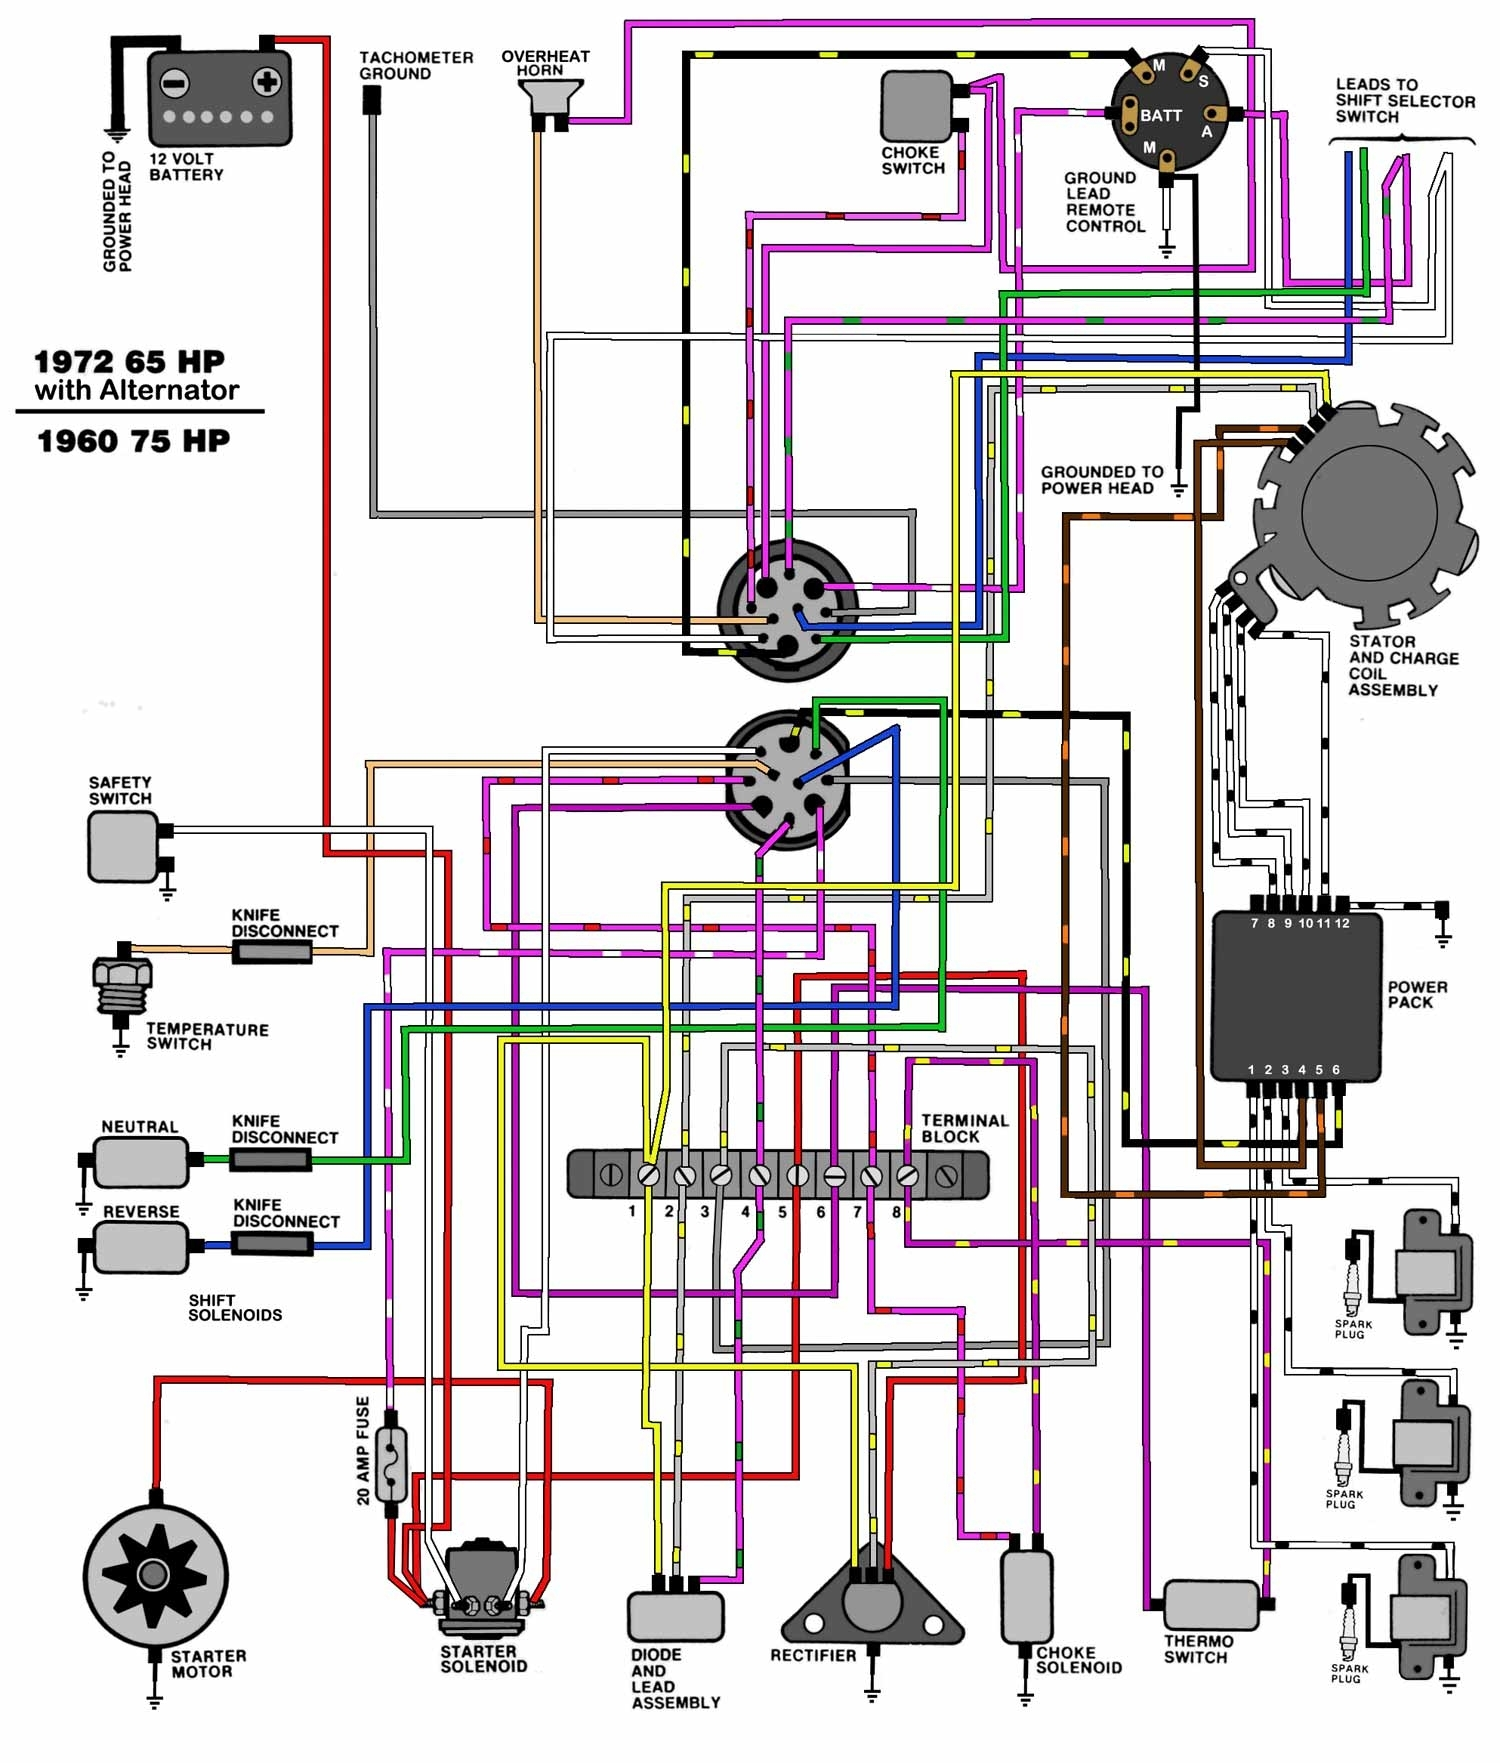 Trex 450 Wiring Diagram Electrical Diagrams Helicopter Emc Rc Servo For T Rex